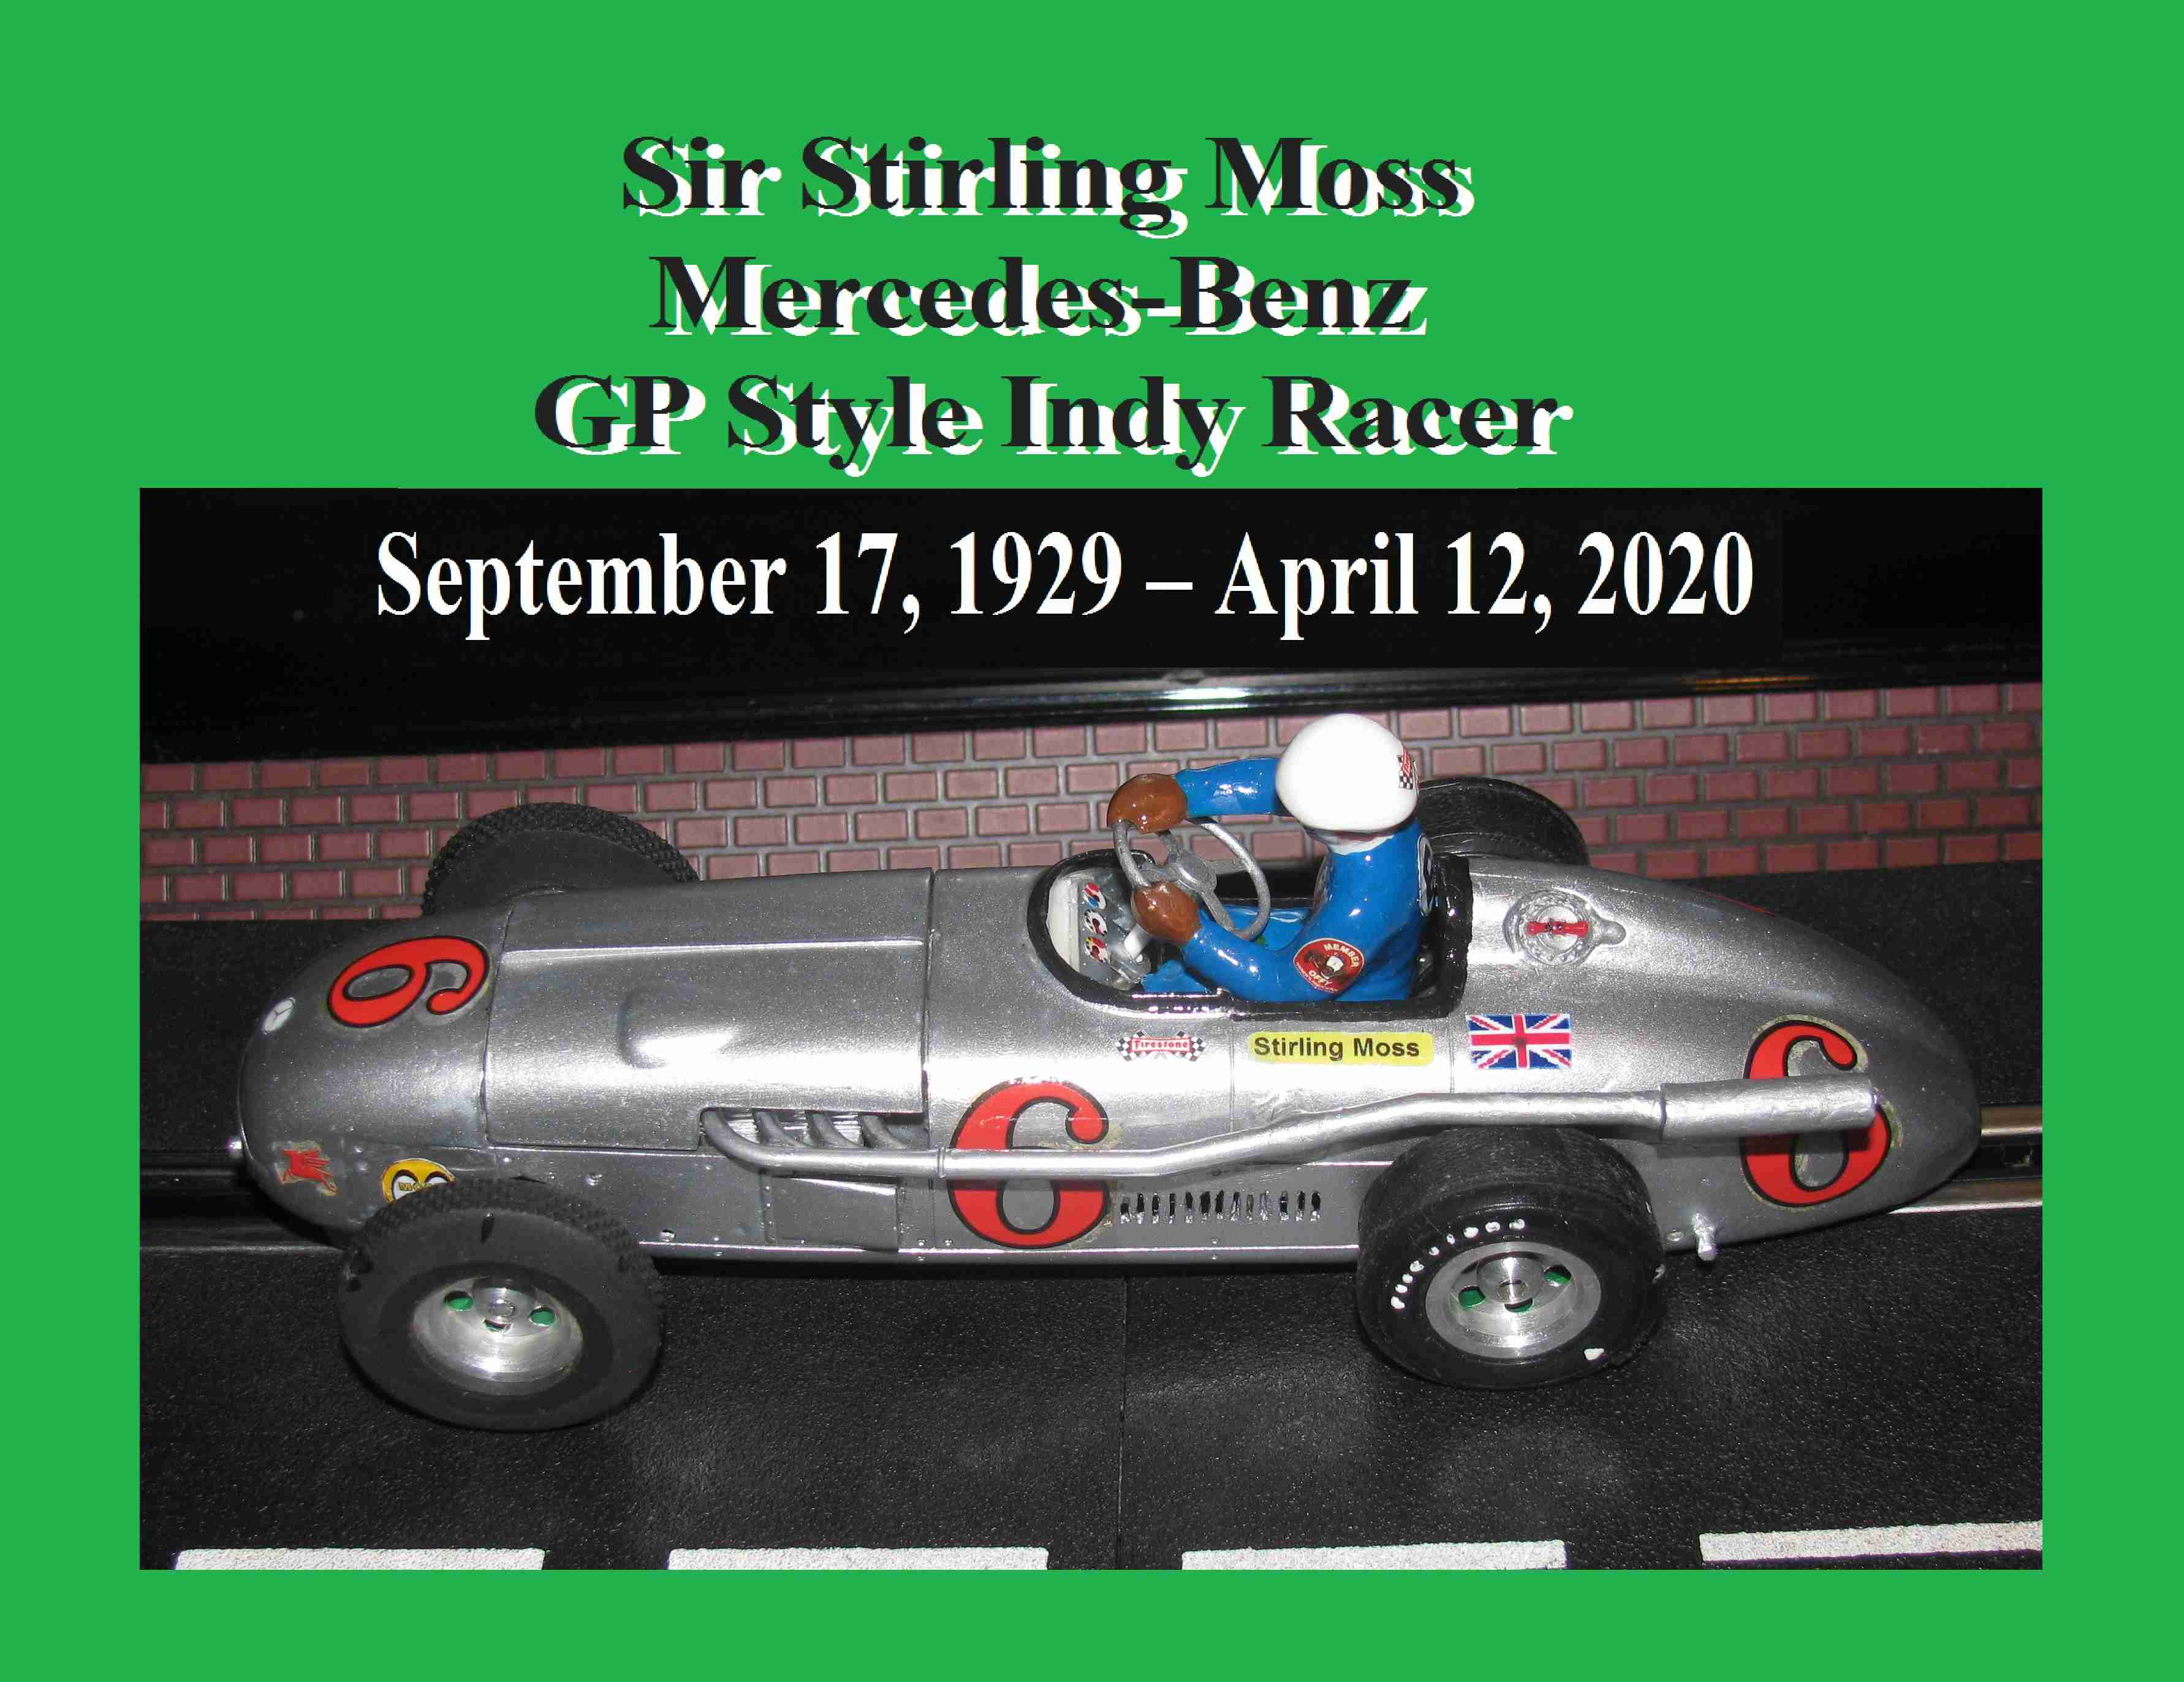 * Winter is coming SALE * Sir Stirling Moss Mercedes-Benz GP Style Indy Racer Slot Car 1:24 Scale, INCLUDES: High Quality Display Stand